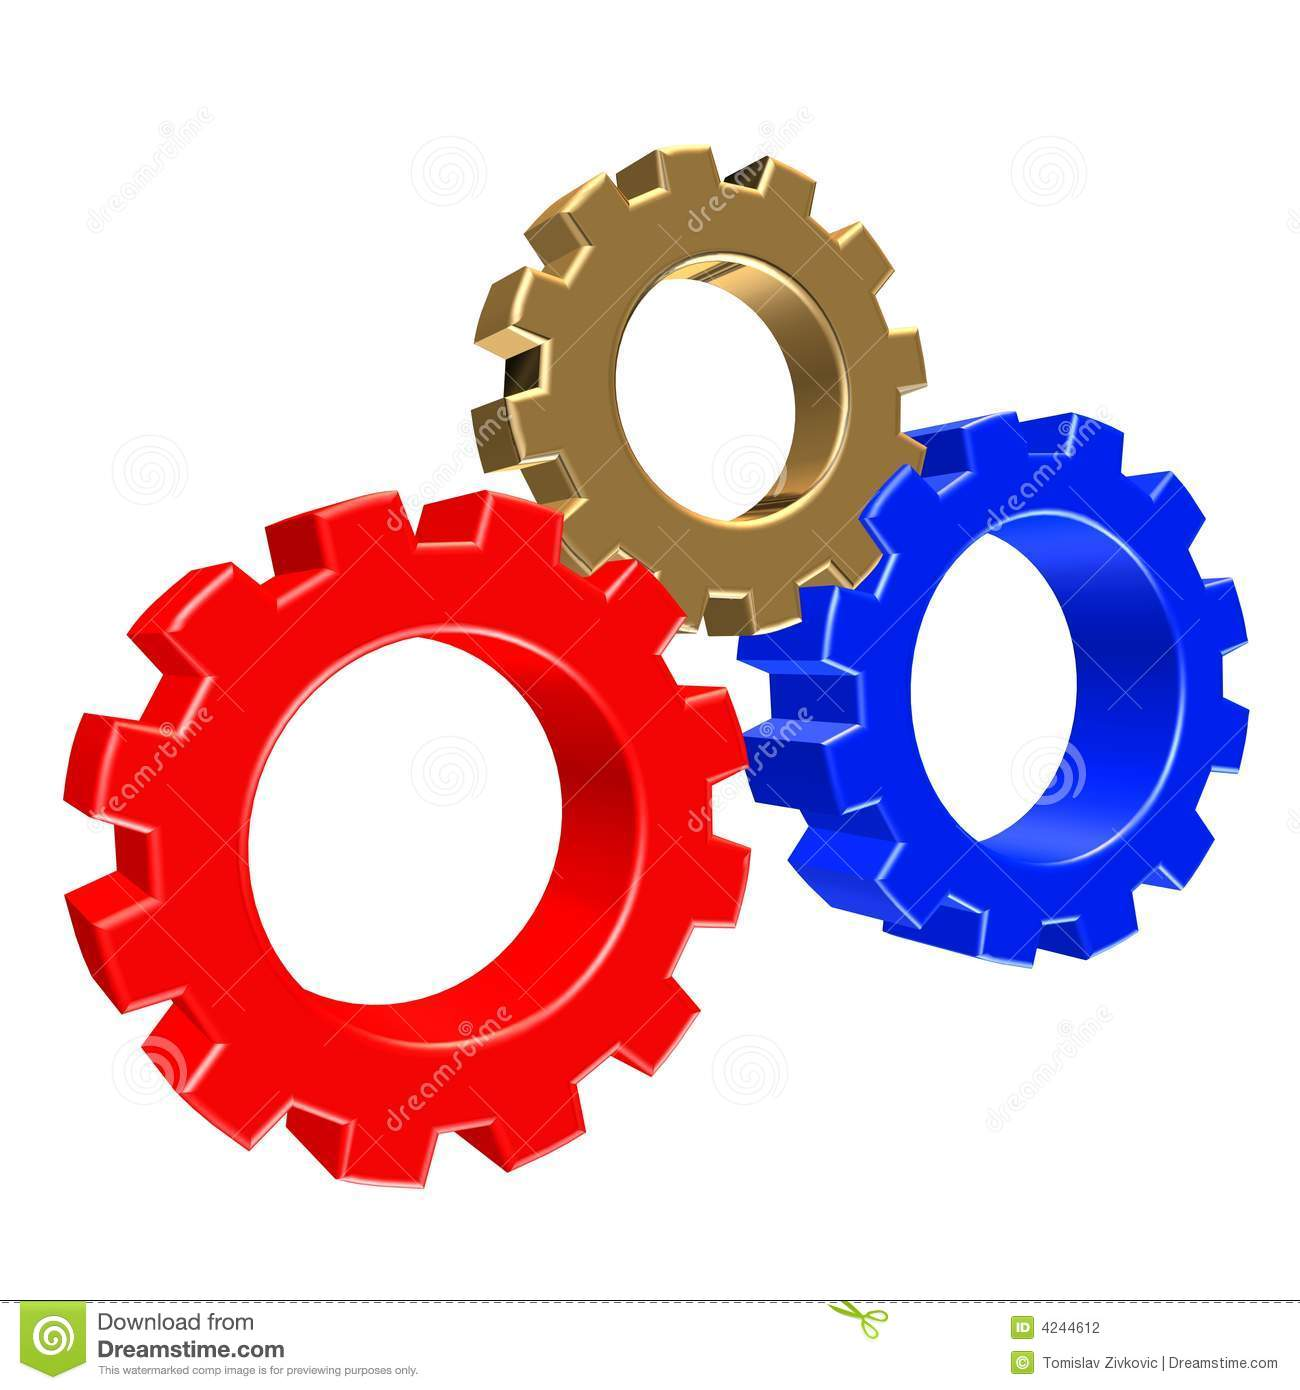 3D colorful gears stock illustration. Illustration of